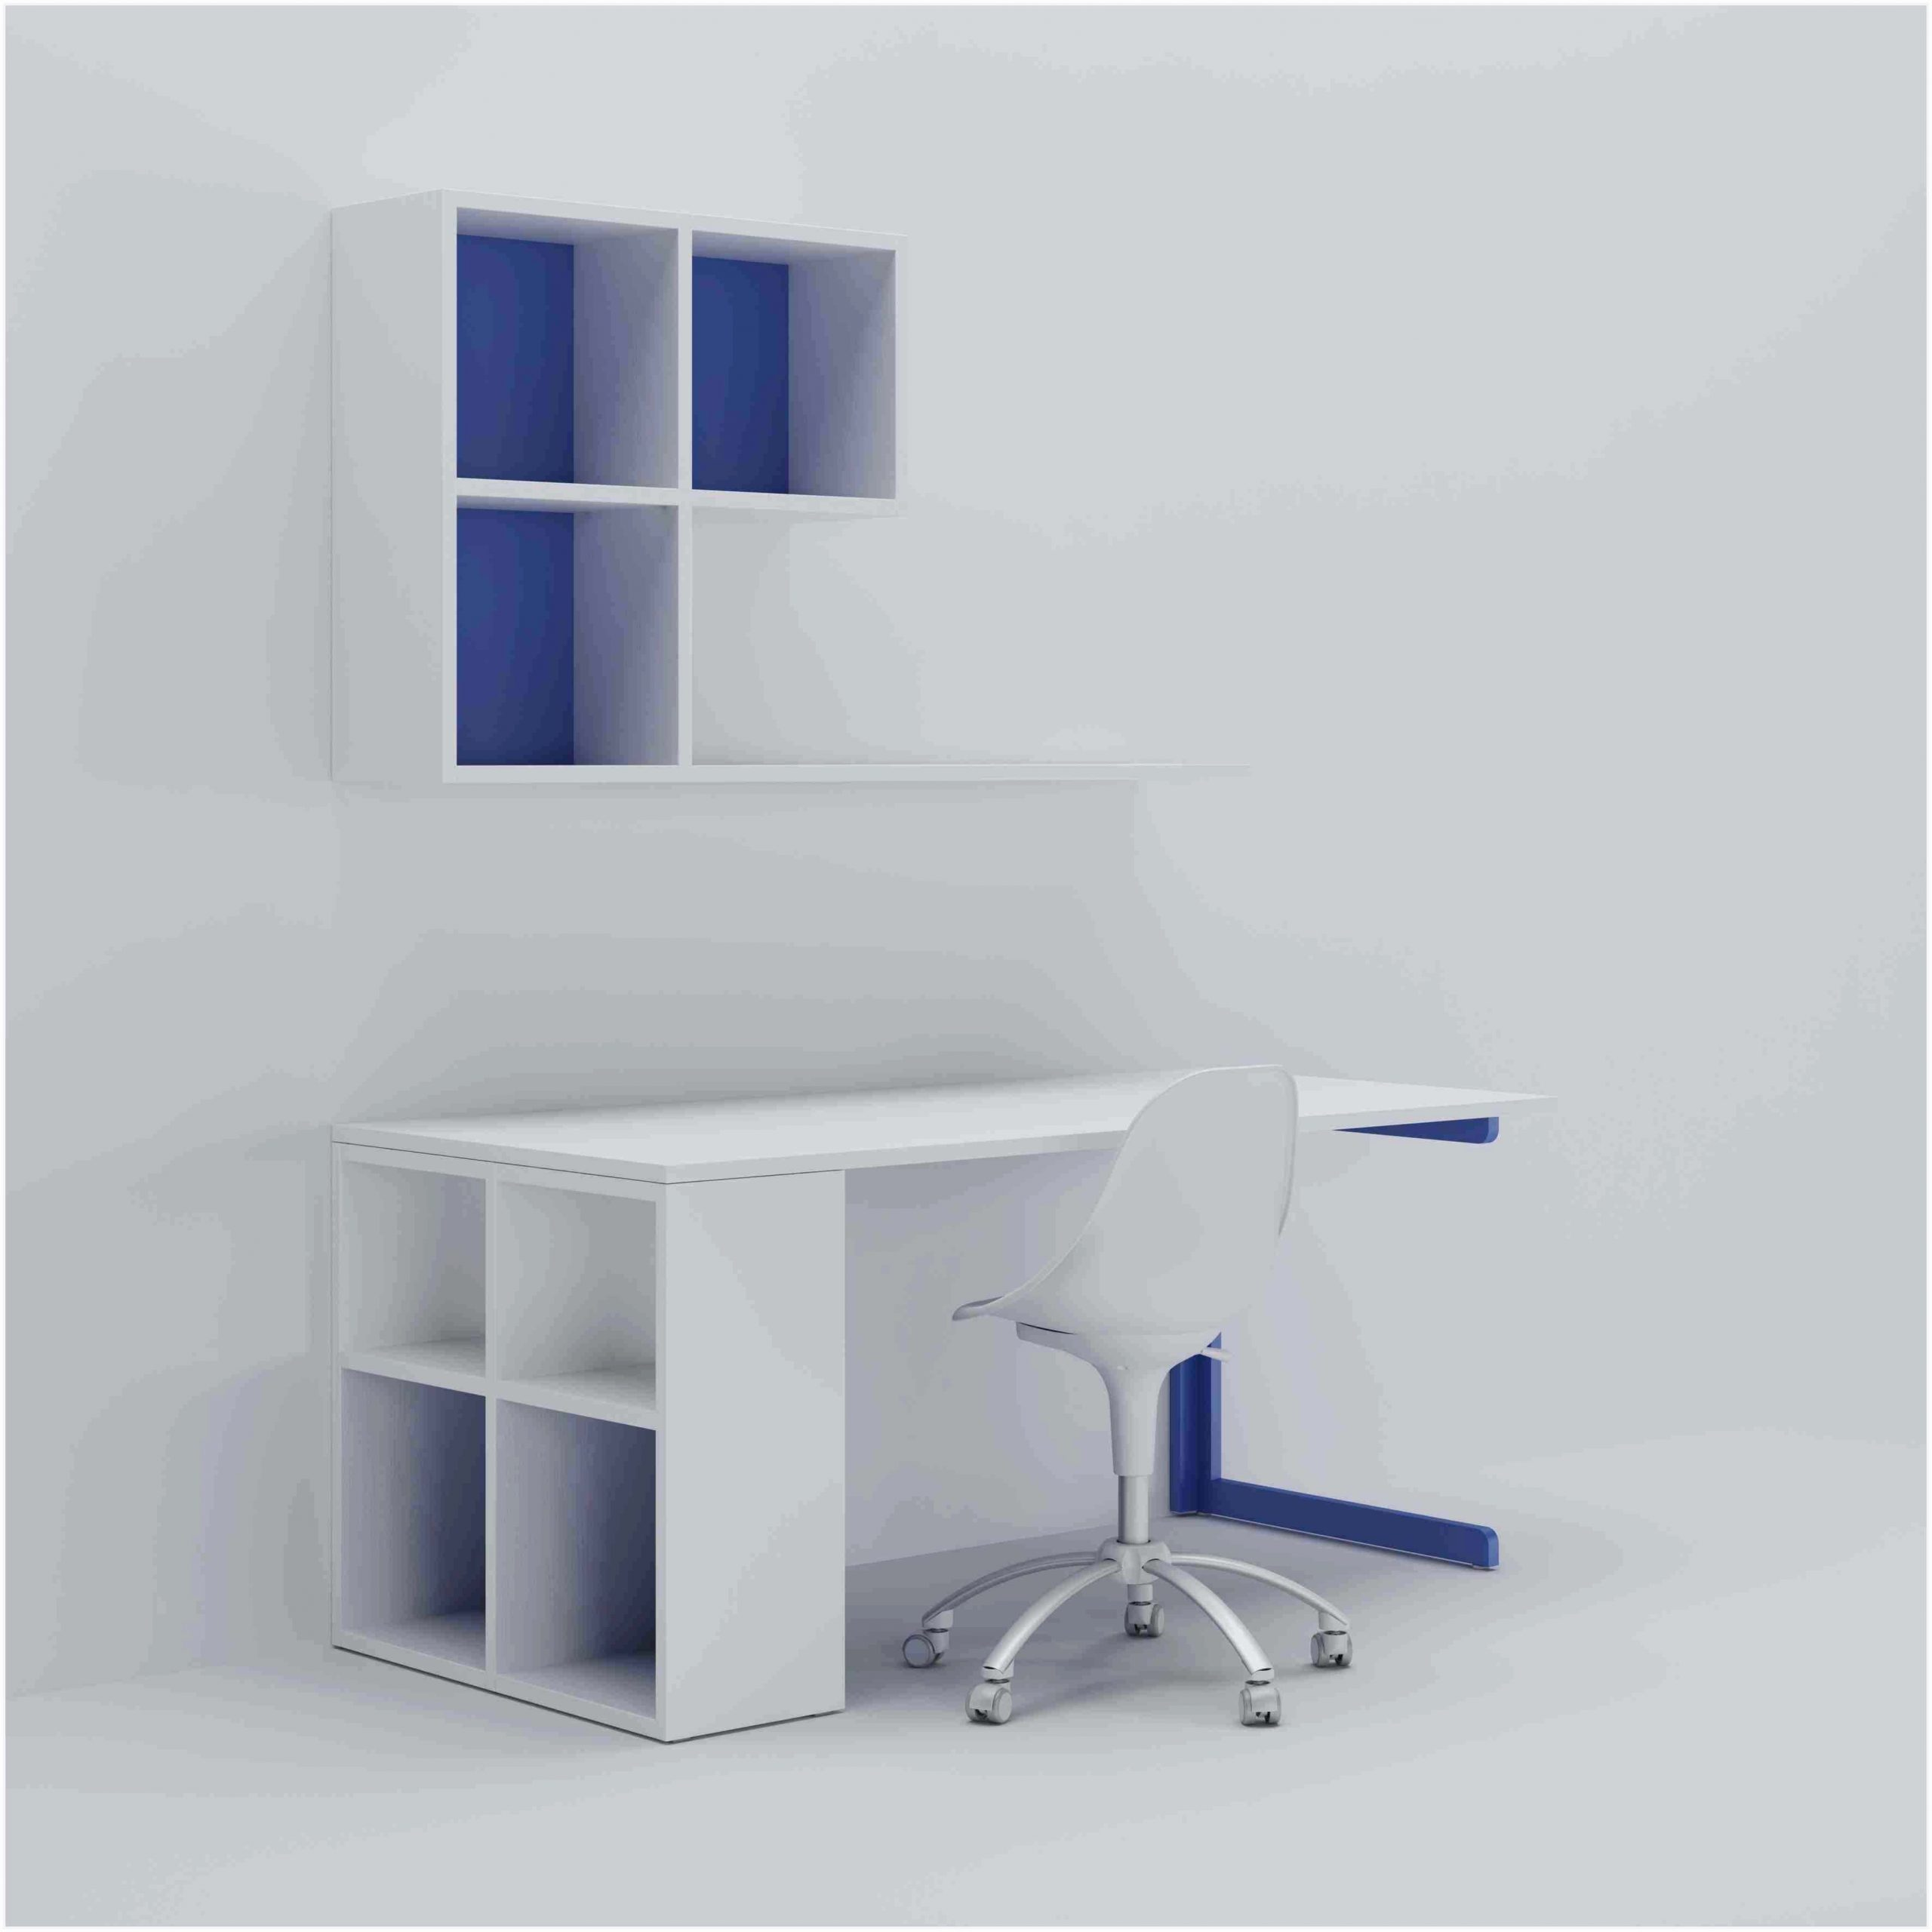 Tabouret Assis Debout Impressionnant Luxe Siege Assis Debout ... destiné Bureau Assis Debout Conforama